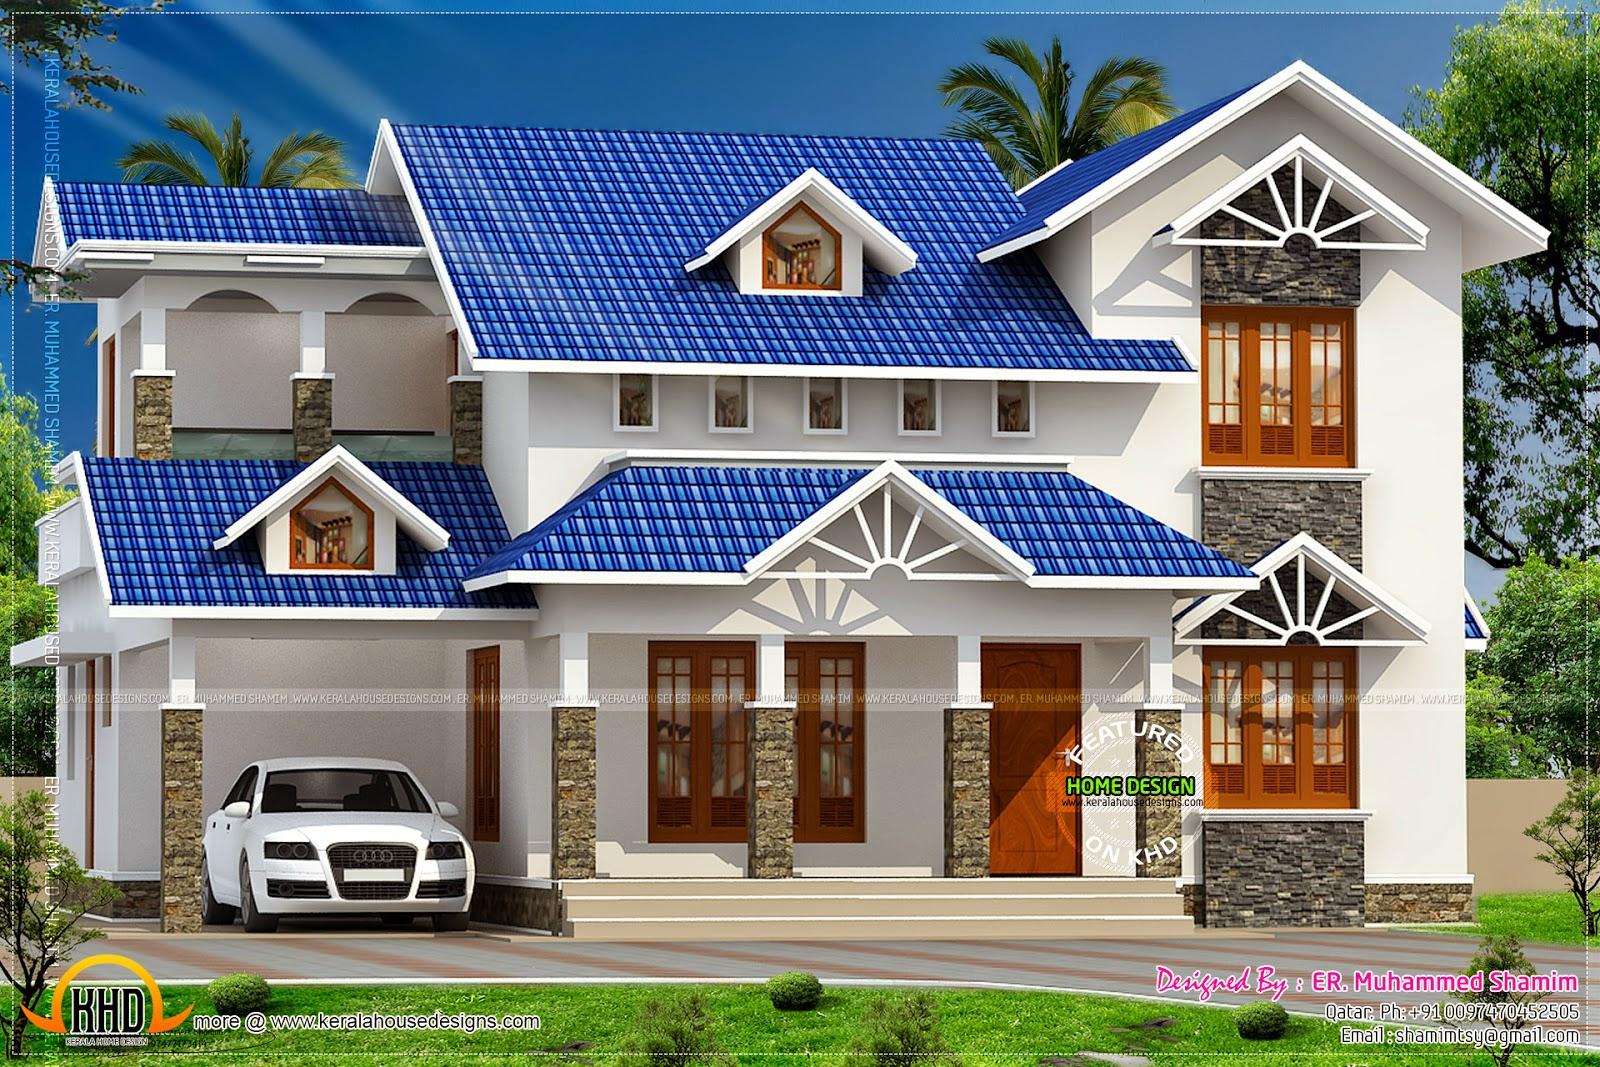 Roof Design Ideas: Kerala Home Design And Floor Plans: Nice Sloped Roof